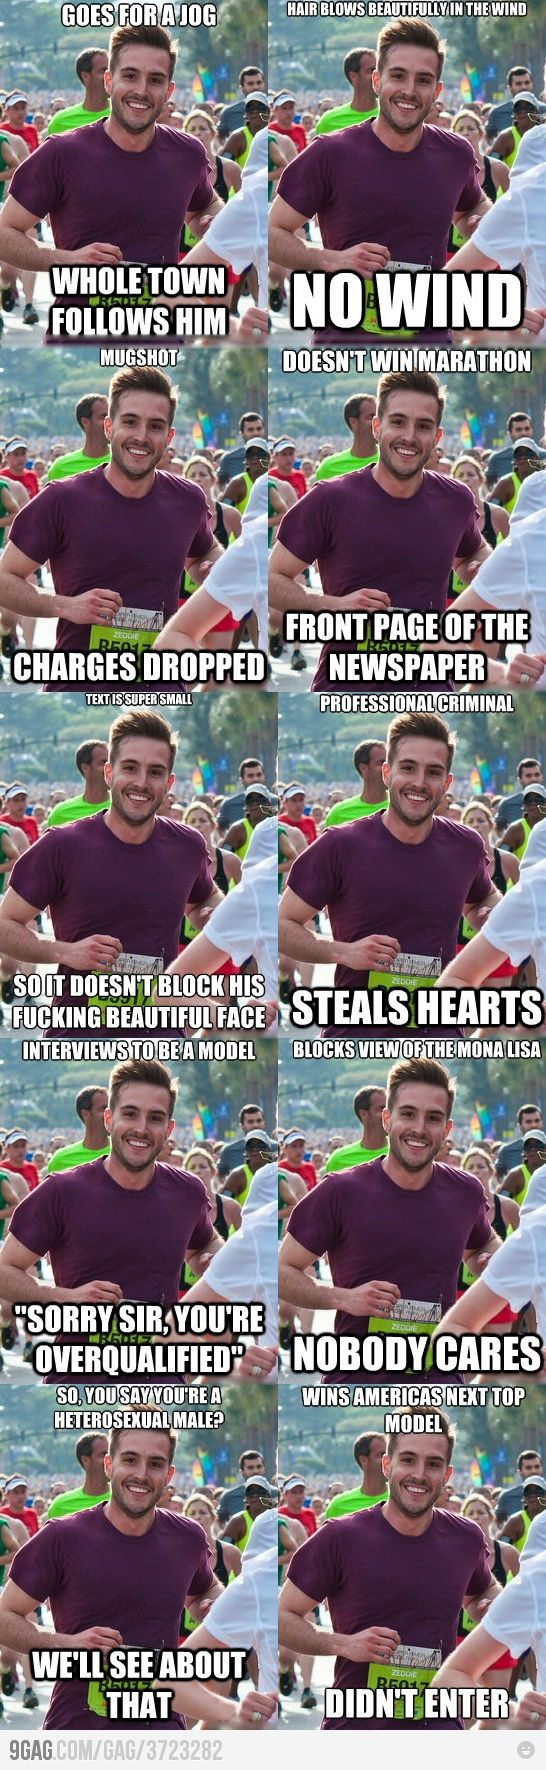 The Best of Ridiculously Photogenic Guy. This is so funny! At the